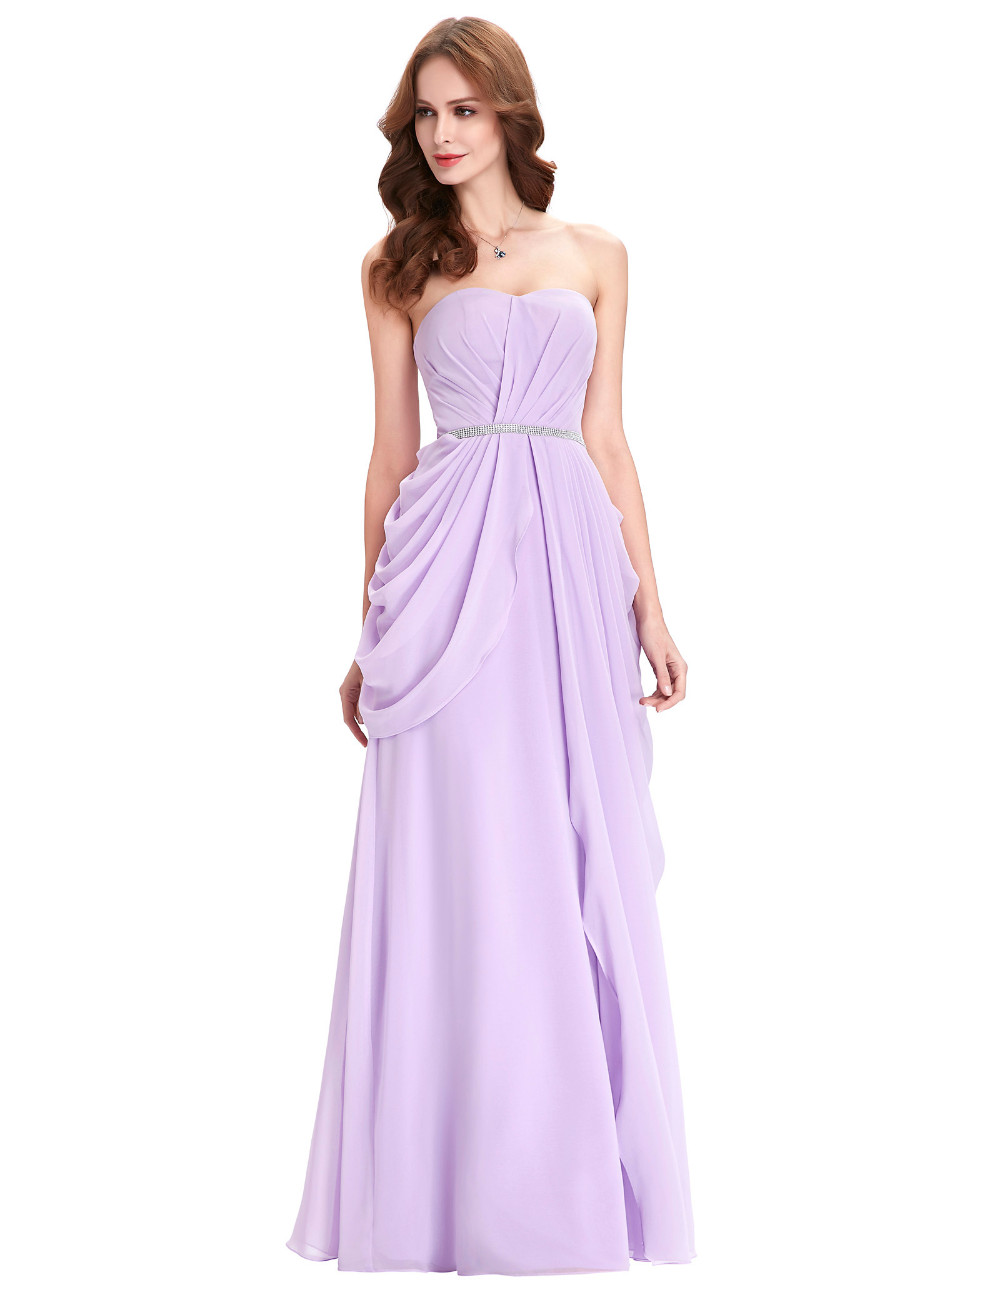 Purple Lavender Long Chiffon Floor Length Bridesmaid Dress 6